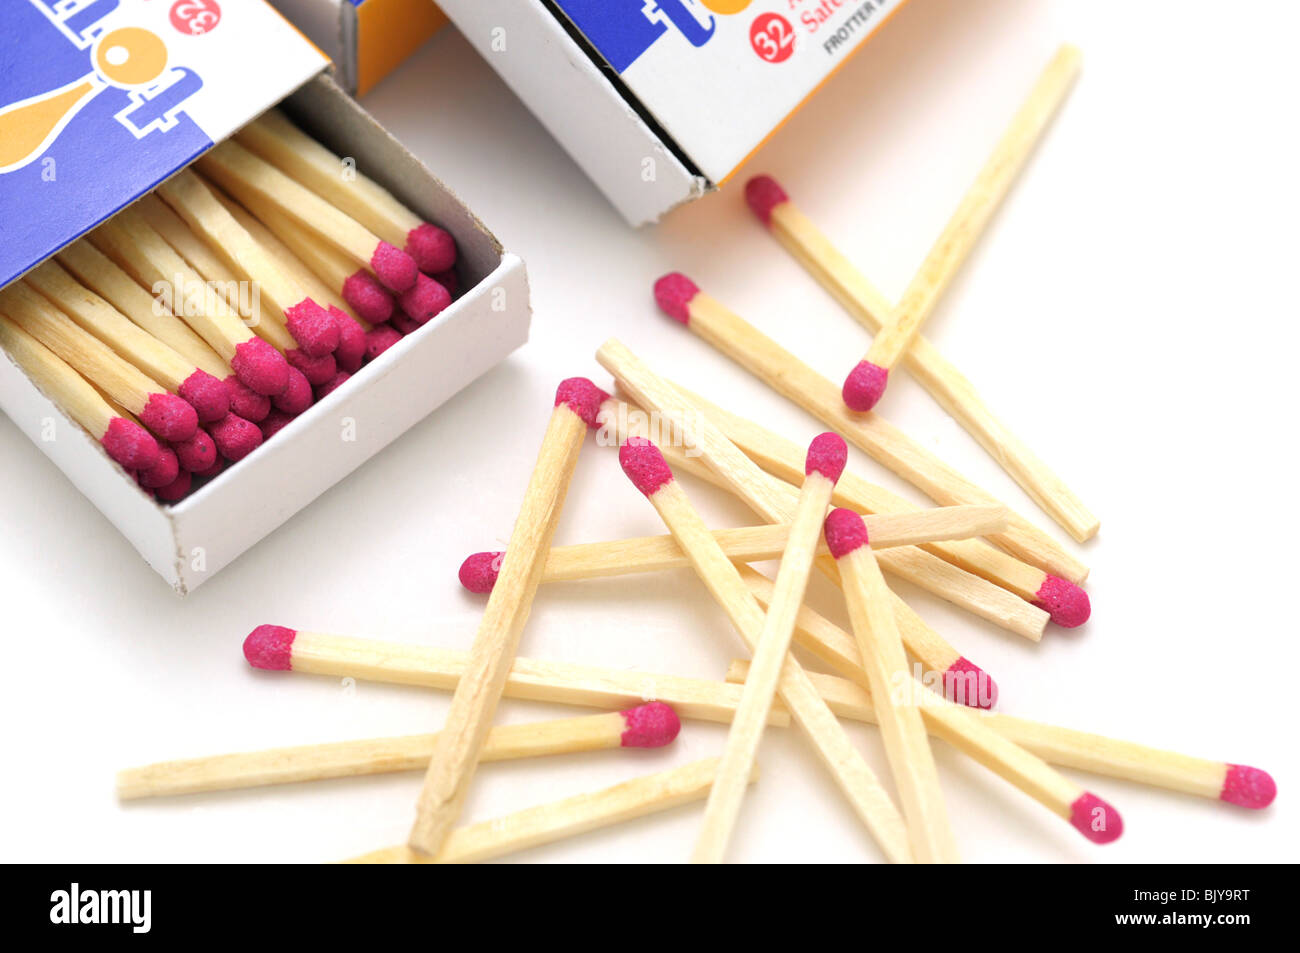 Box of Matches and Matches scattered - Stock Image